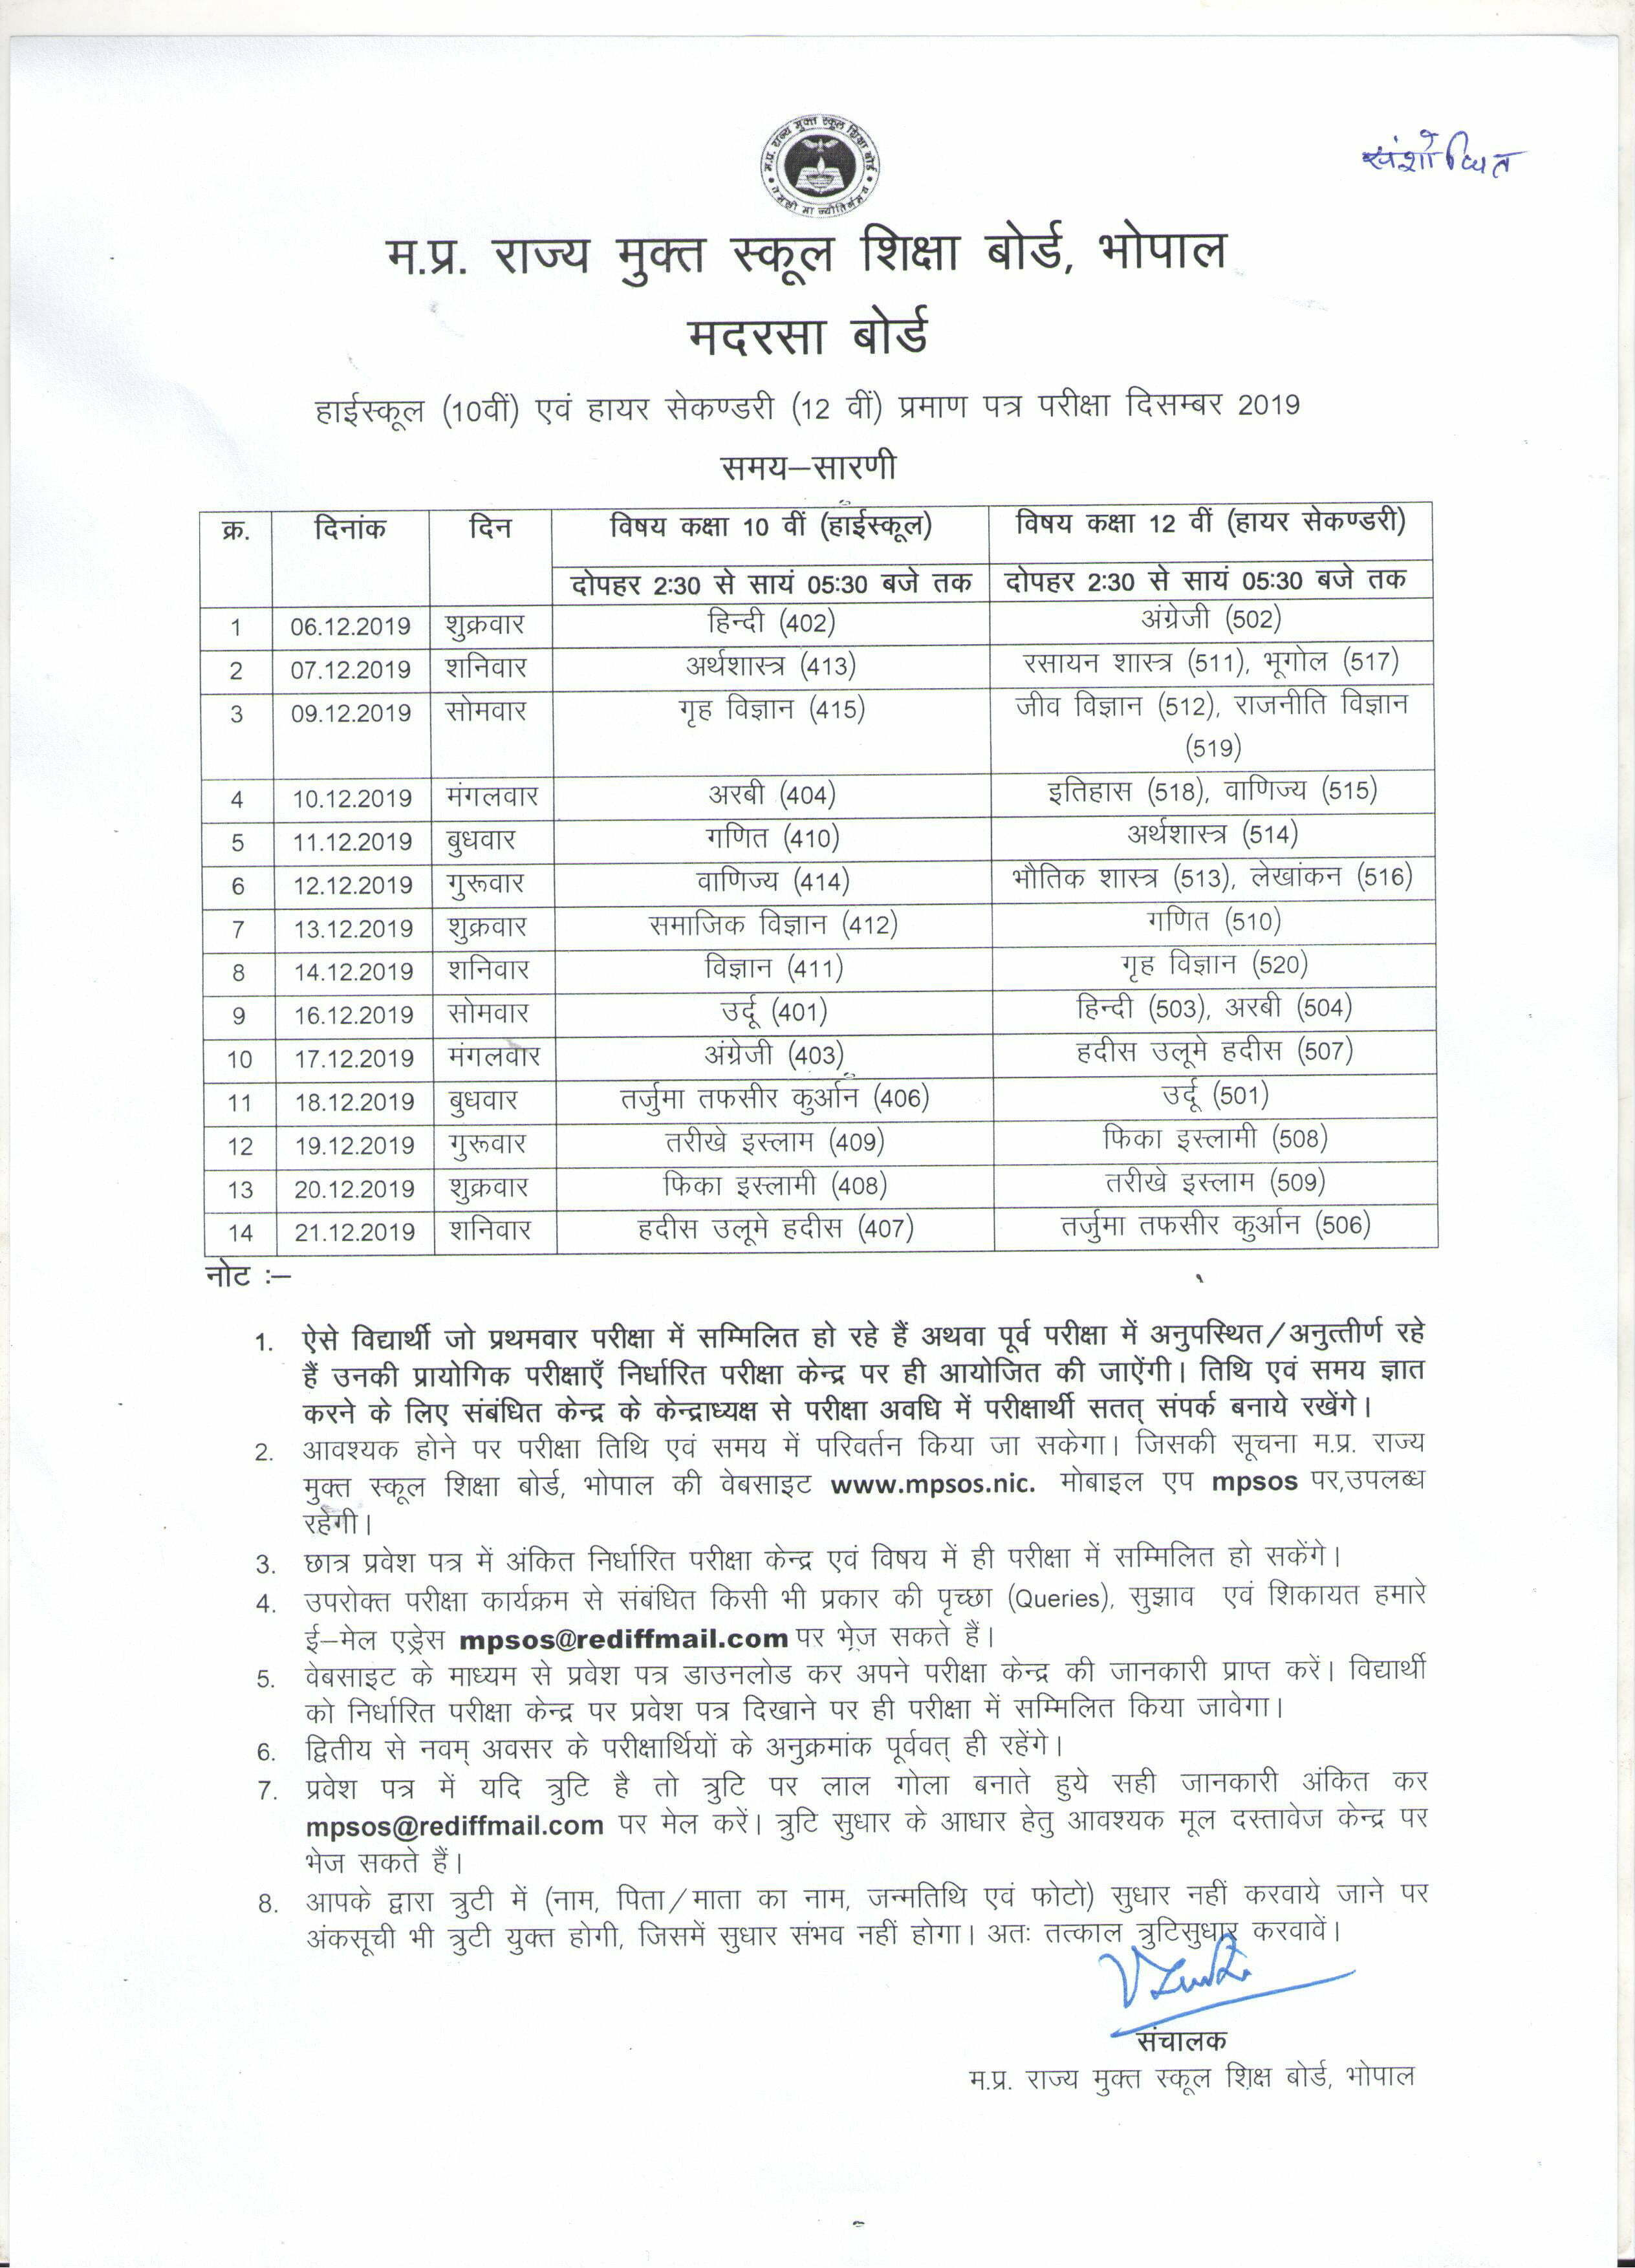 MP Madarsa 12th Time Table 2019 December